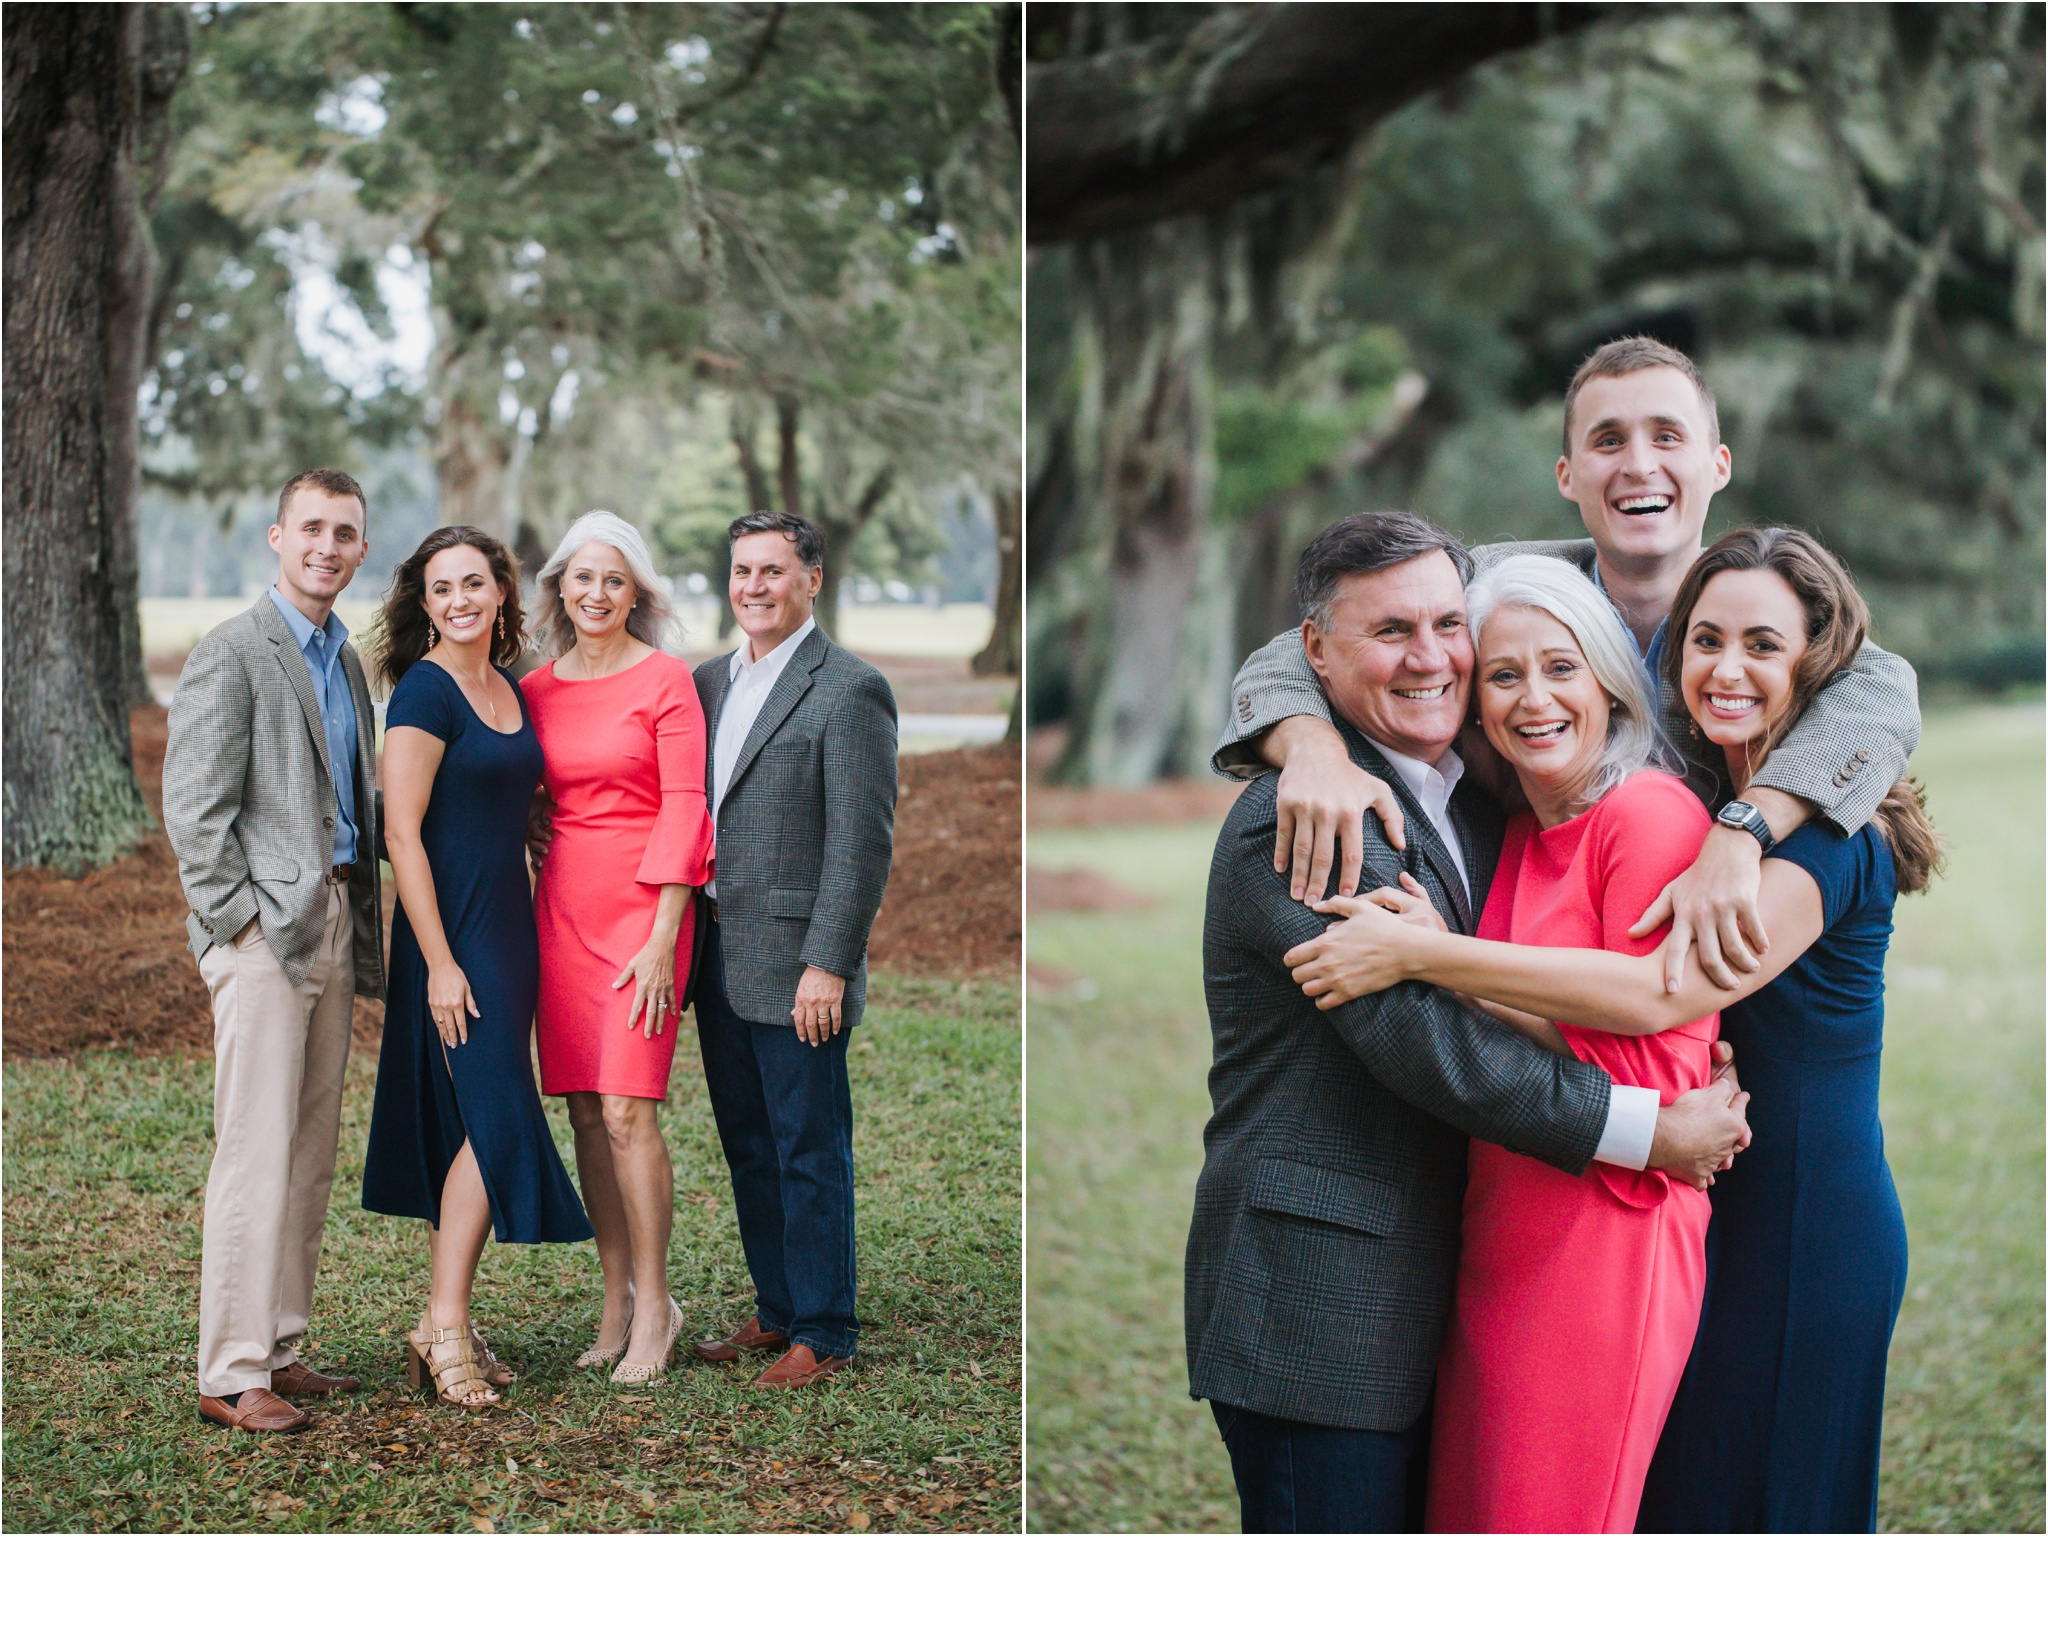 Rainey_Gregg_Photography_St._Simons_Island_Georgia_California_Wedding_Portrait_Photography_1471.jpg